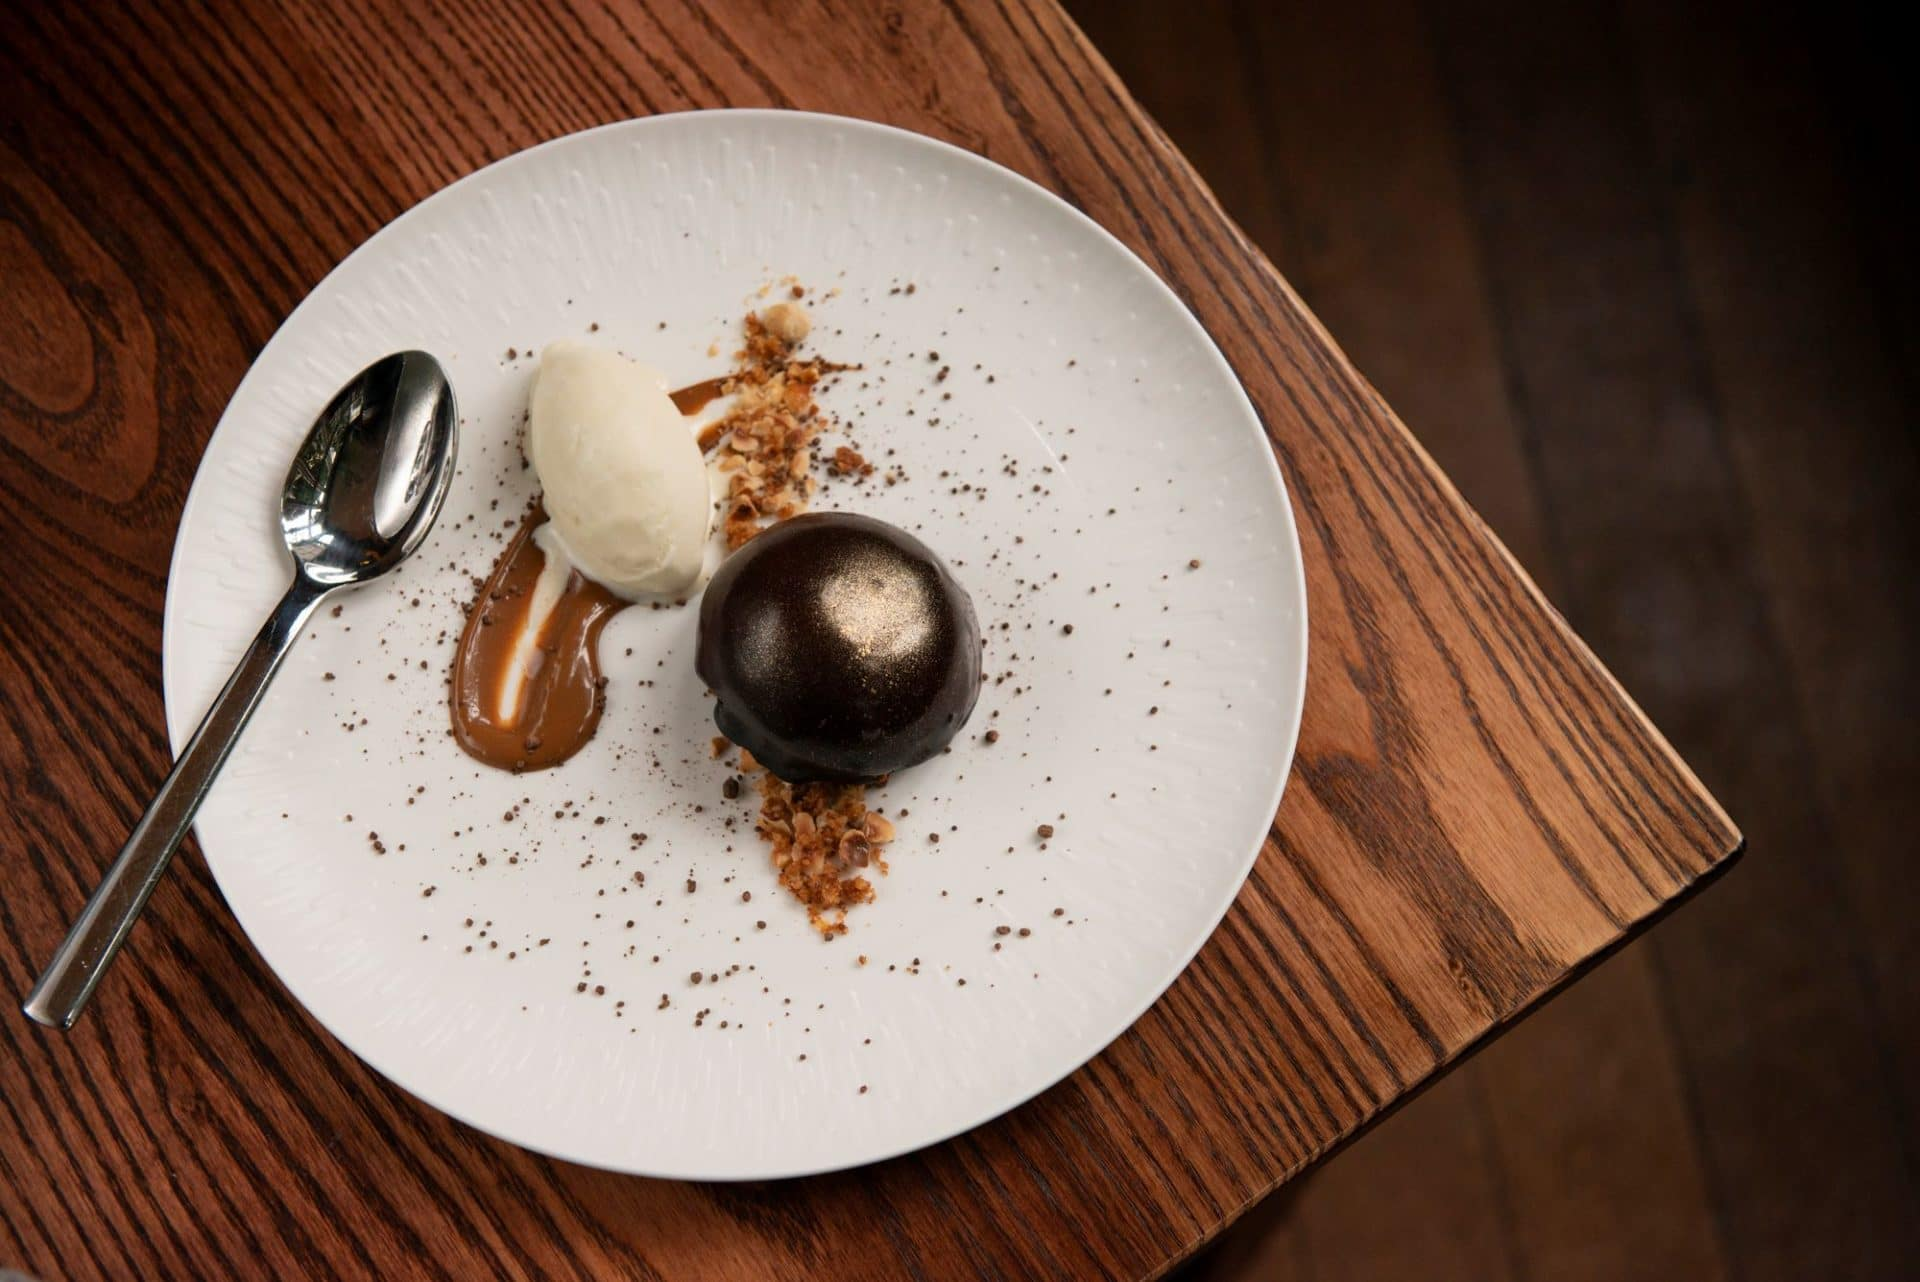 Chocolate dessert Phil Bartley